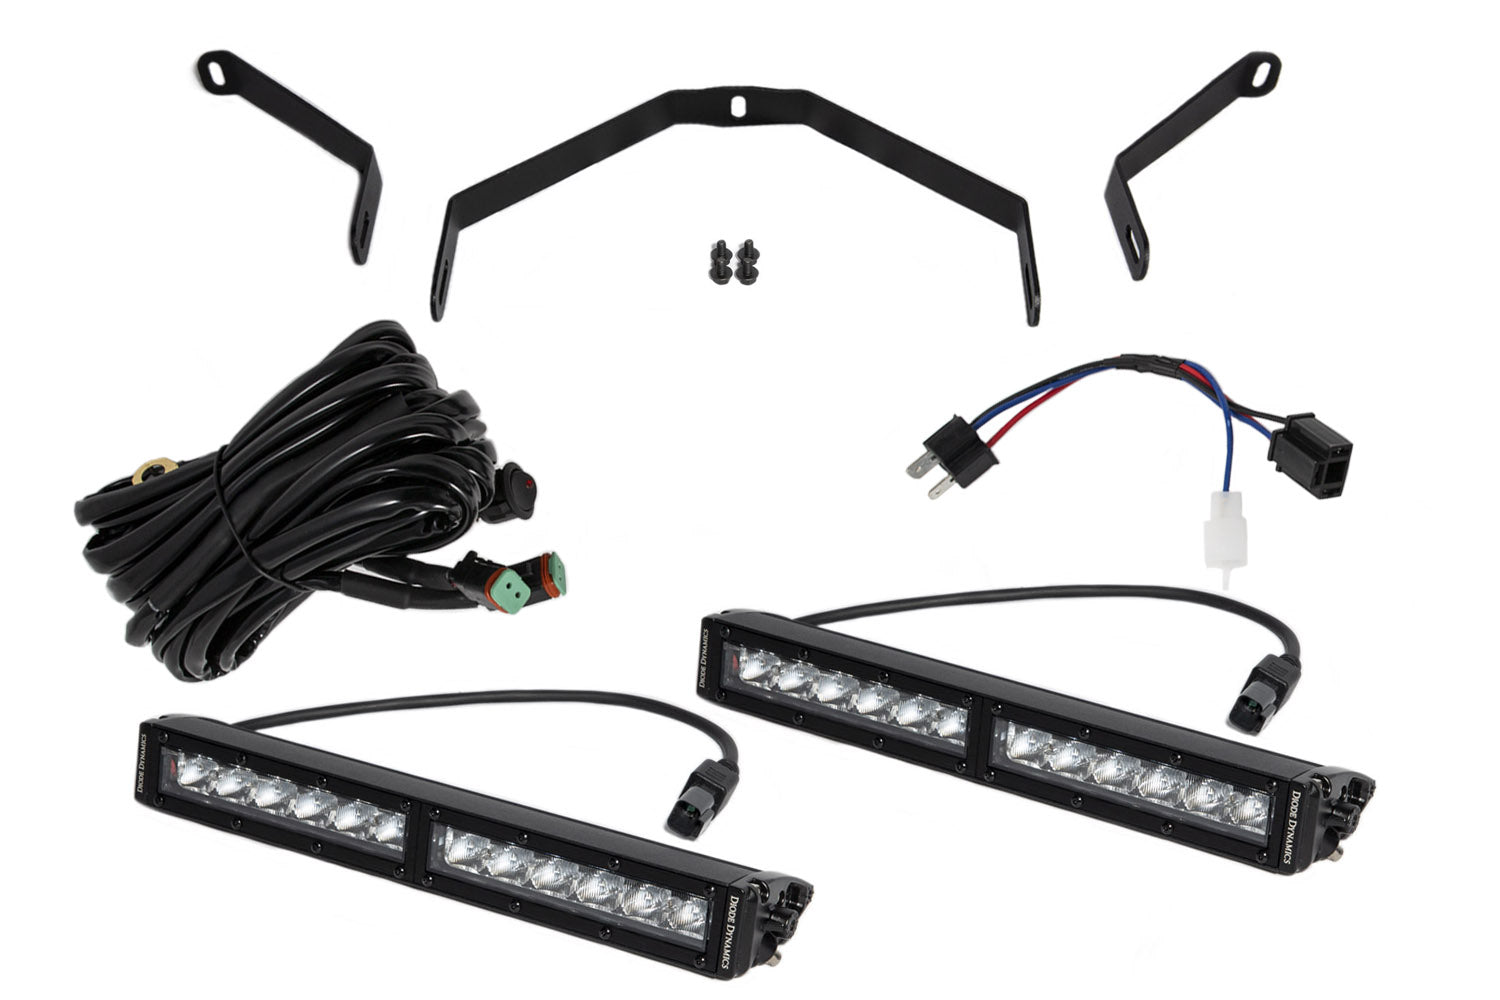 Tundra 12 Inch LED Driving Light Kit White Driving Diode Dynamics